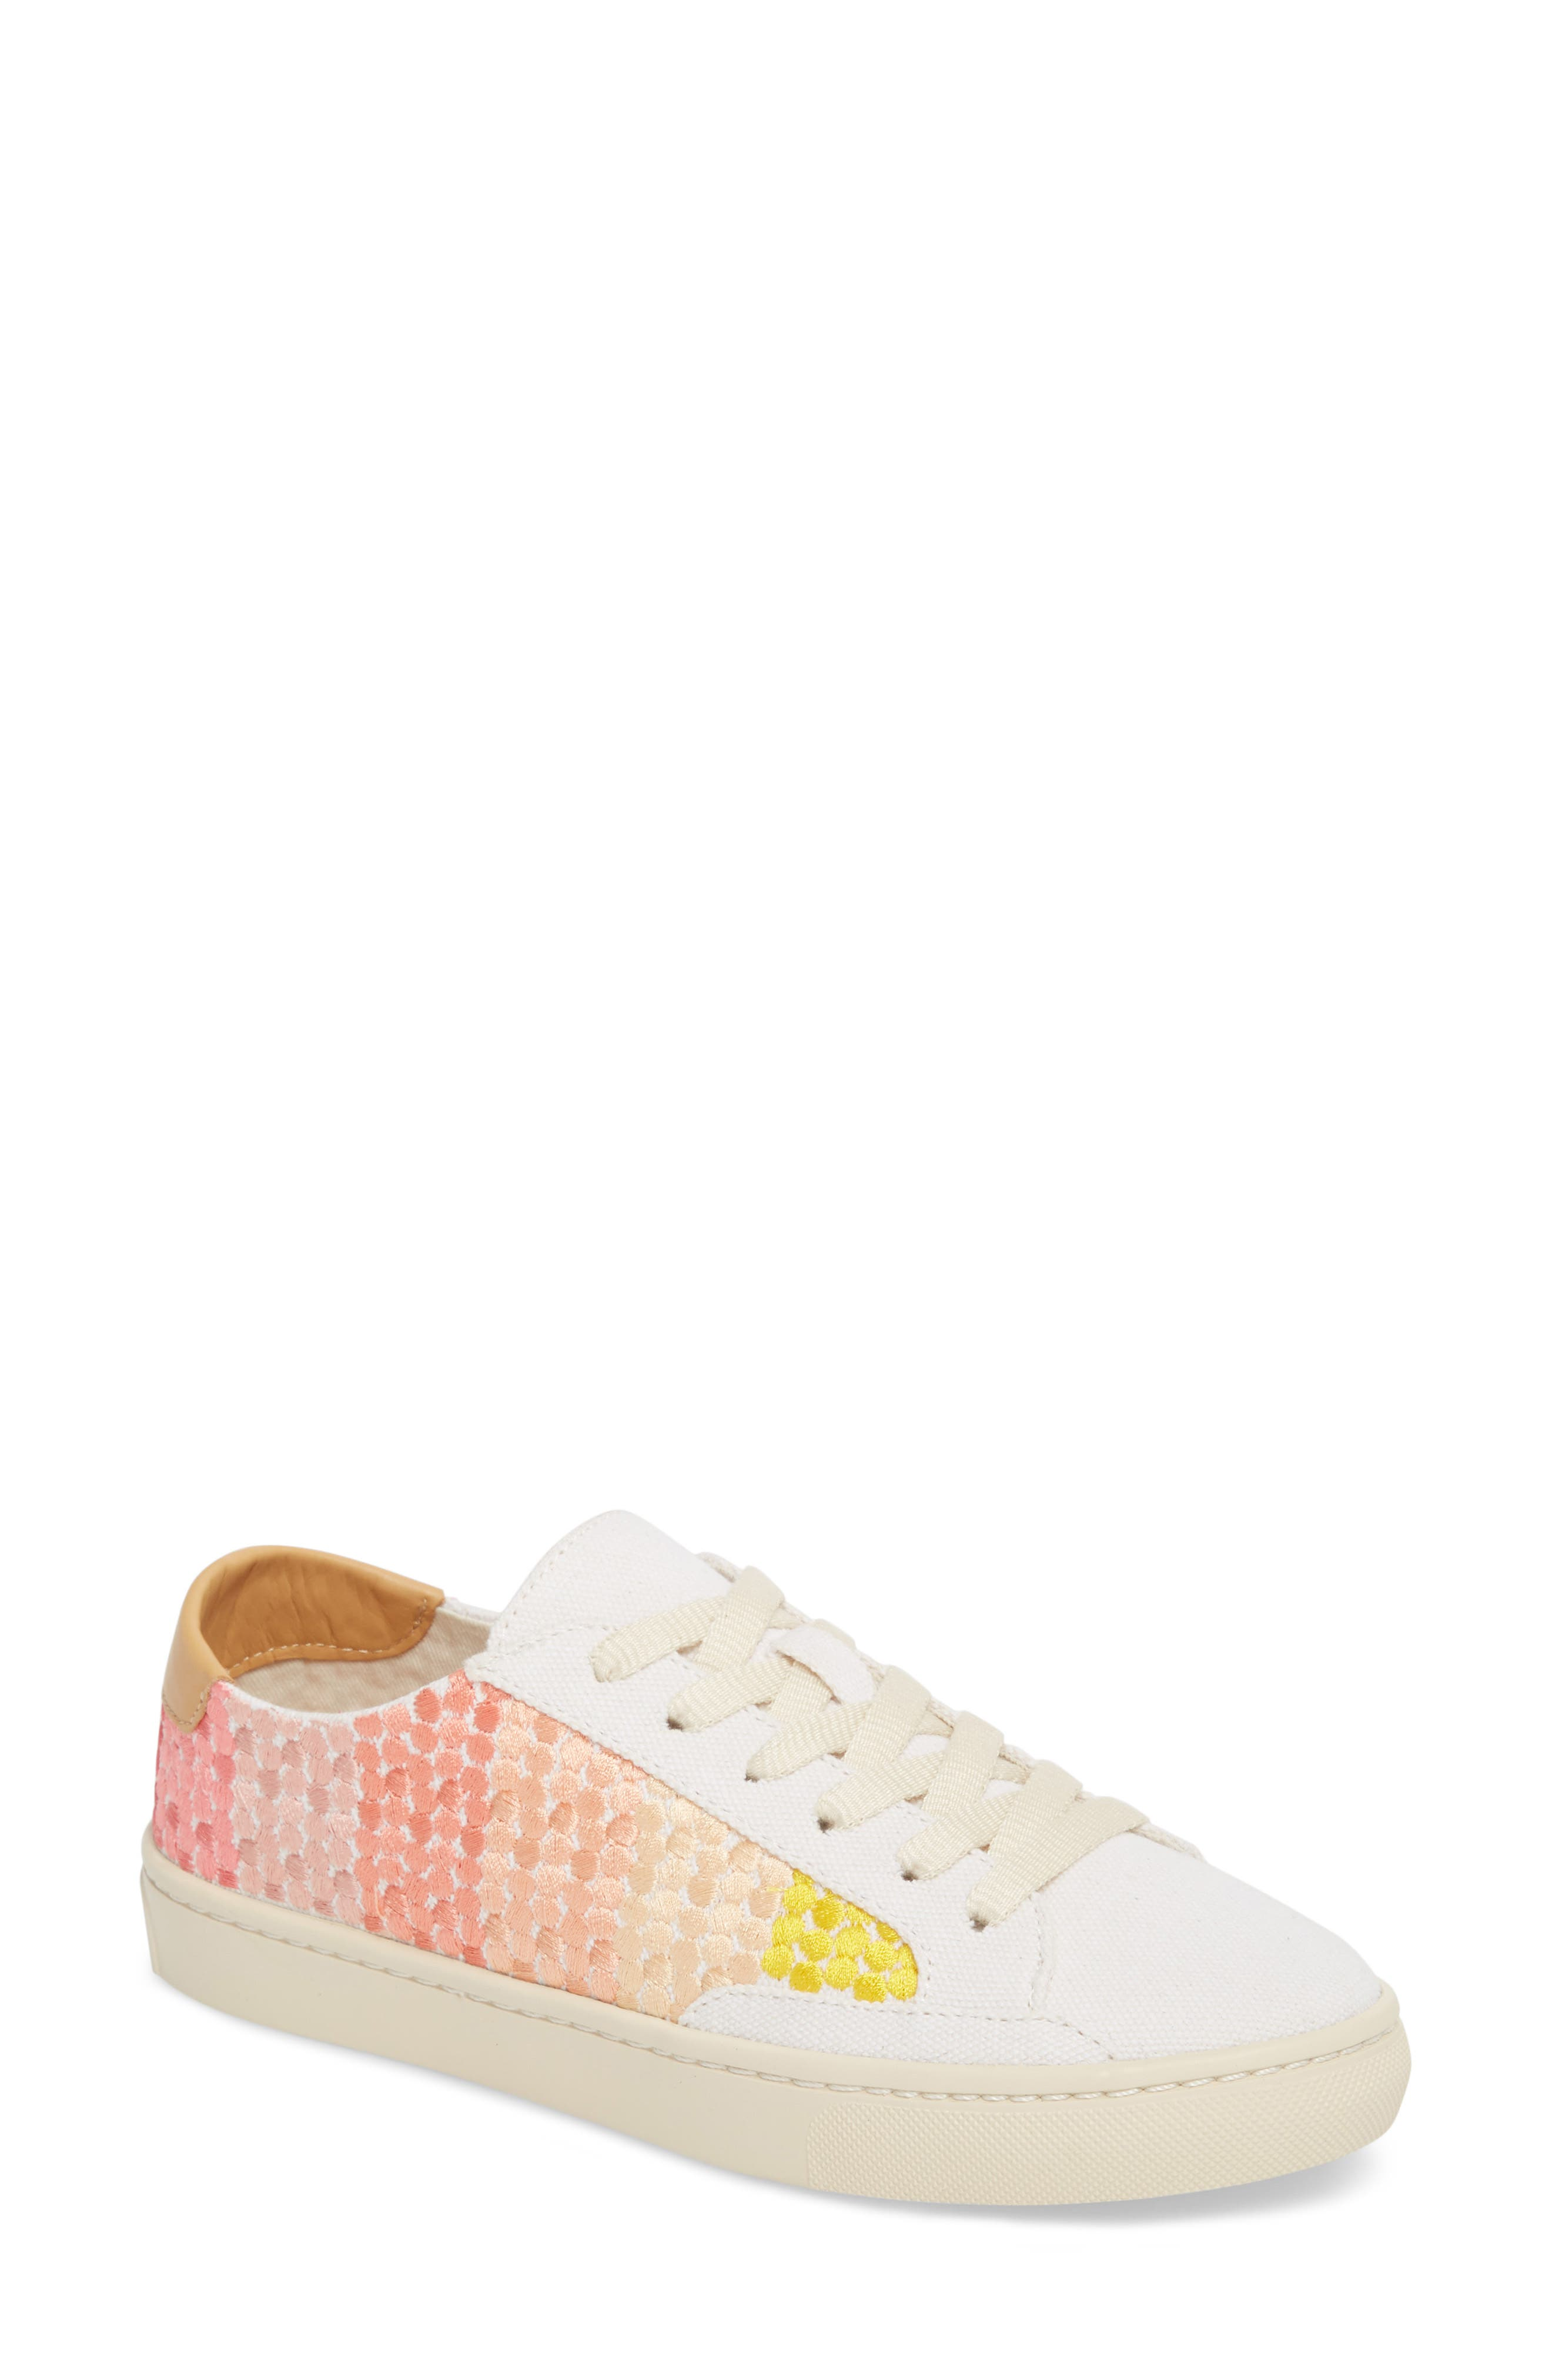 Embroidered Ombre Sneaker,                             Main thumbnail 1, color,                             731